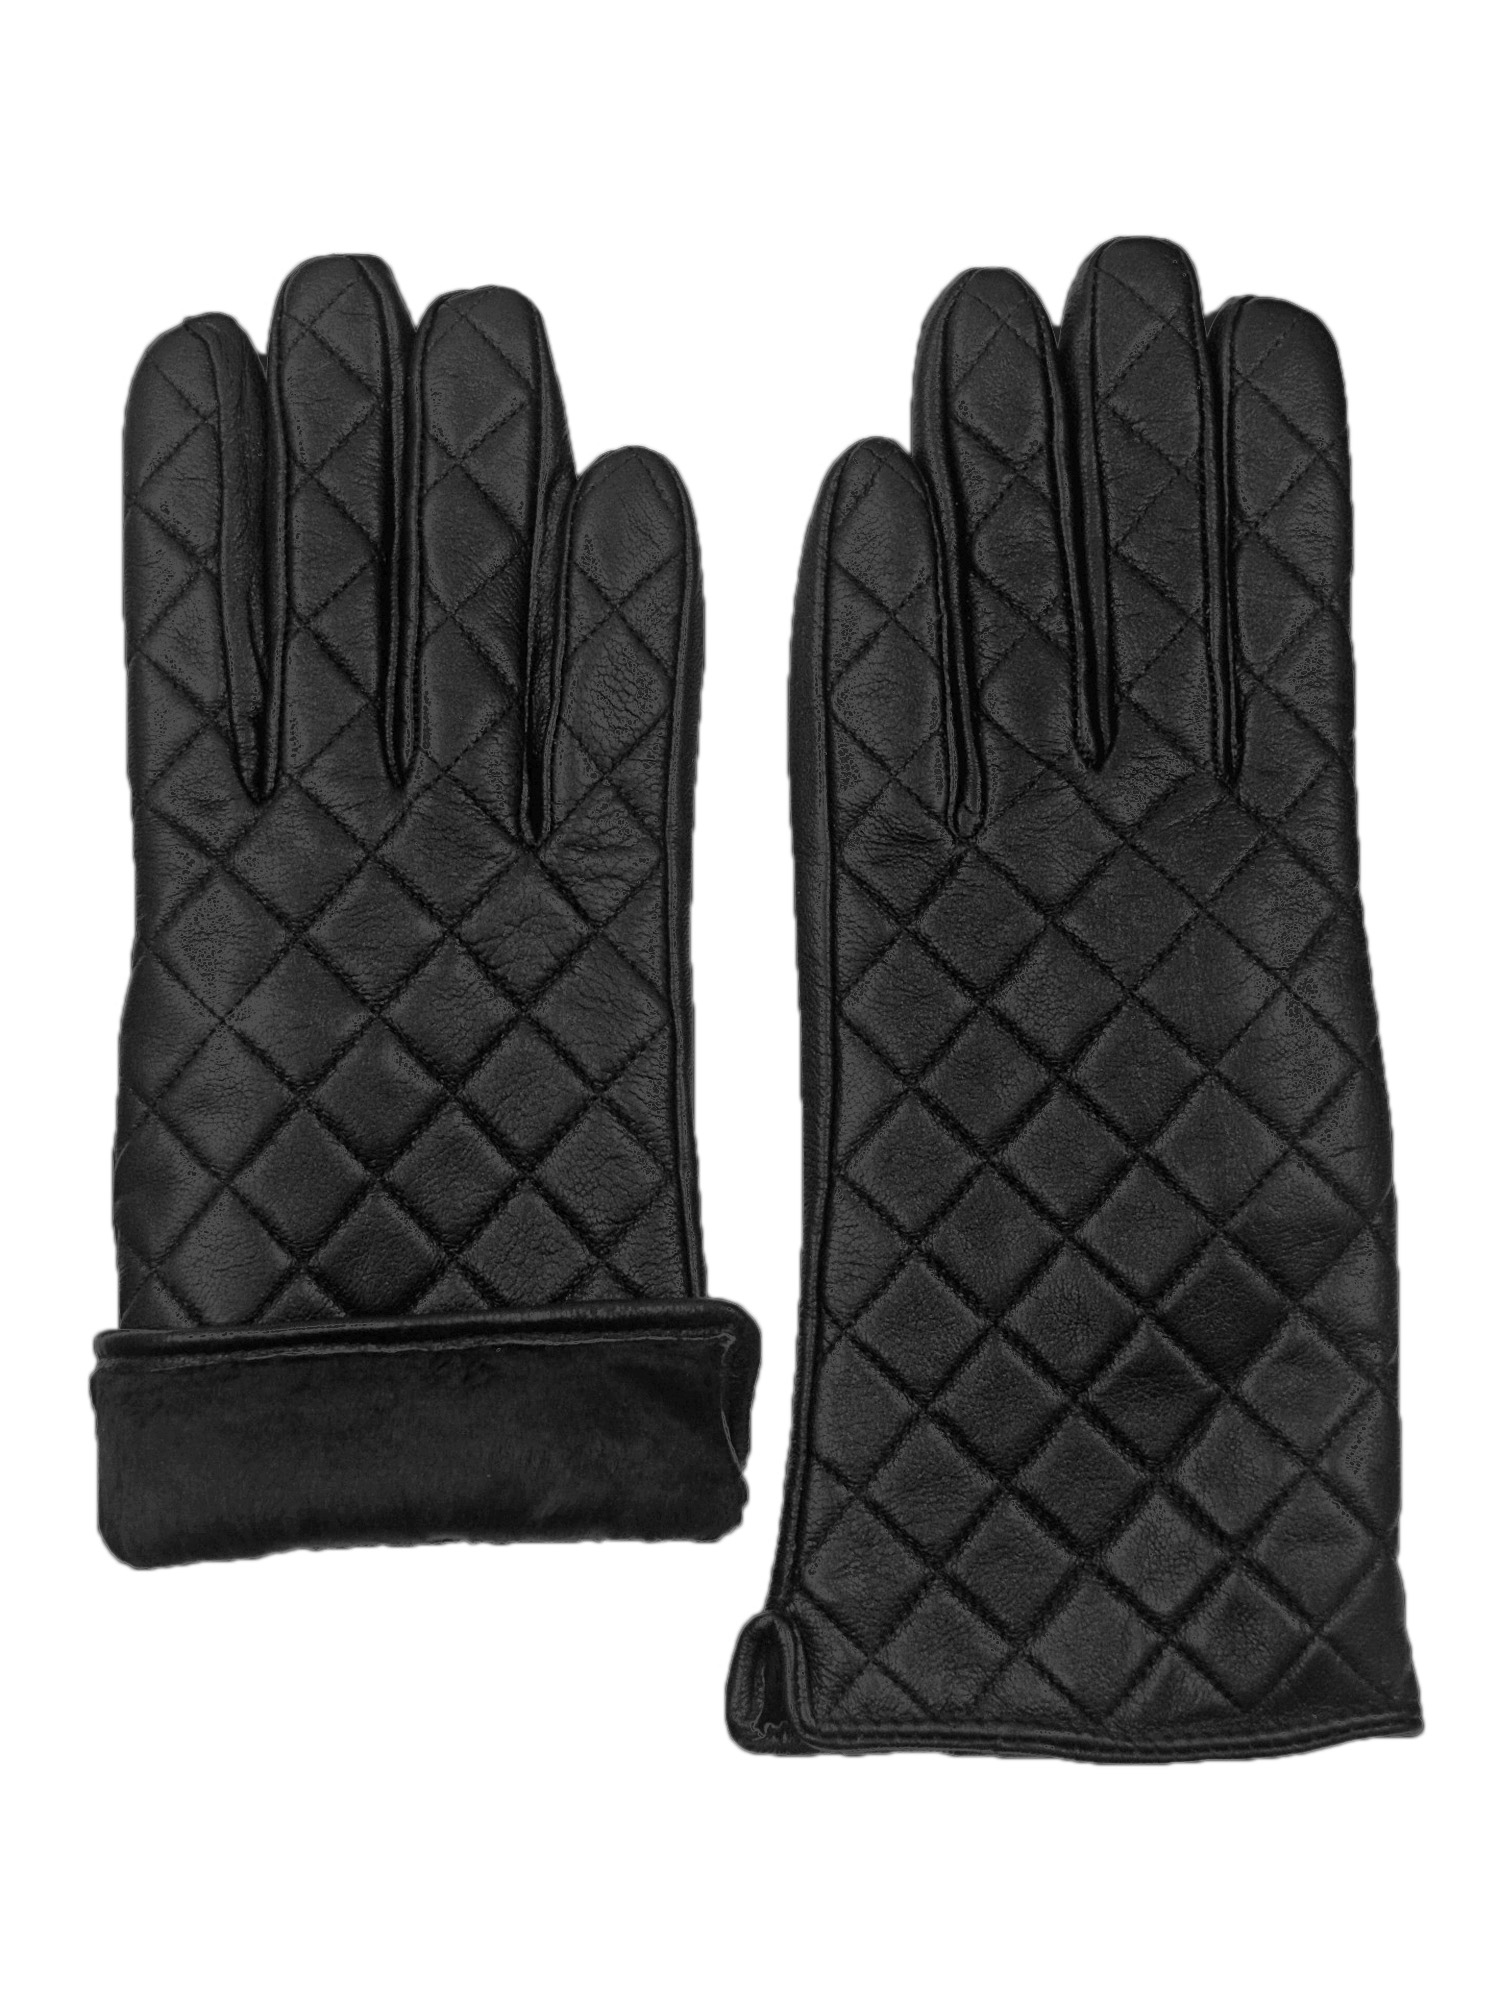 Giromy-Samoni-Womens-Warm-Winter-Leather-Quilted-Dress-Driving-Gloves-Black thumbnail 18